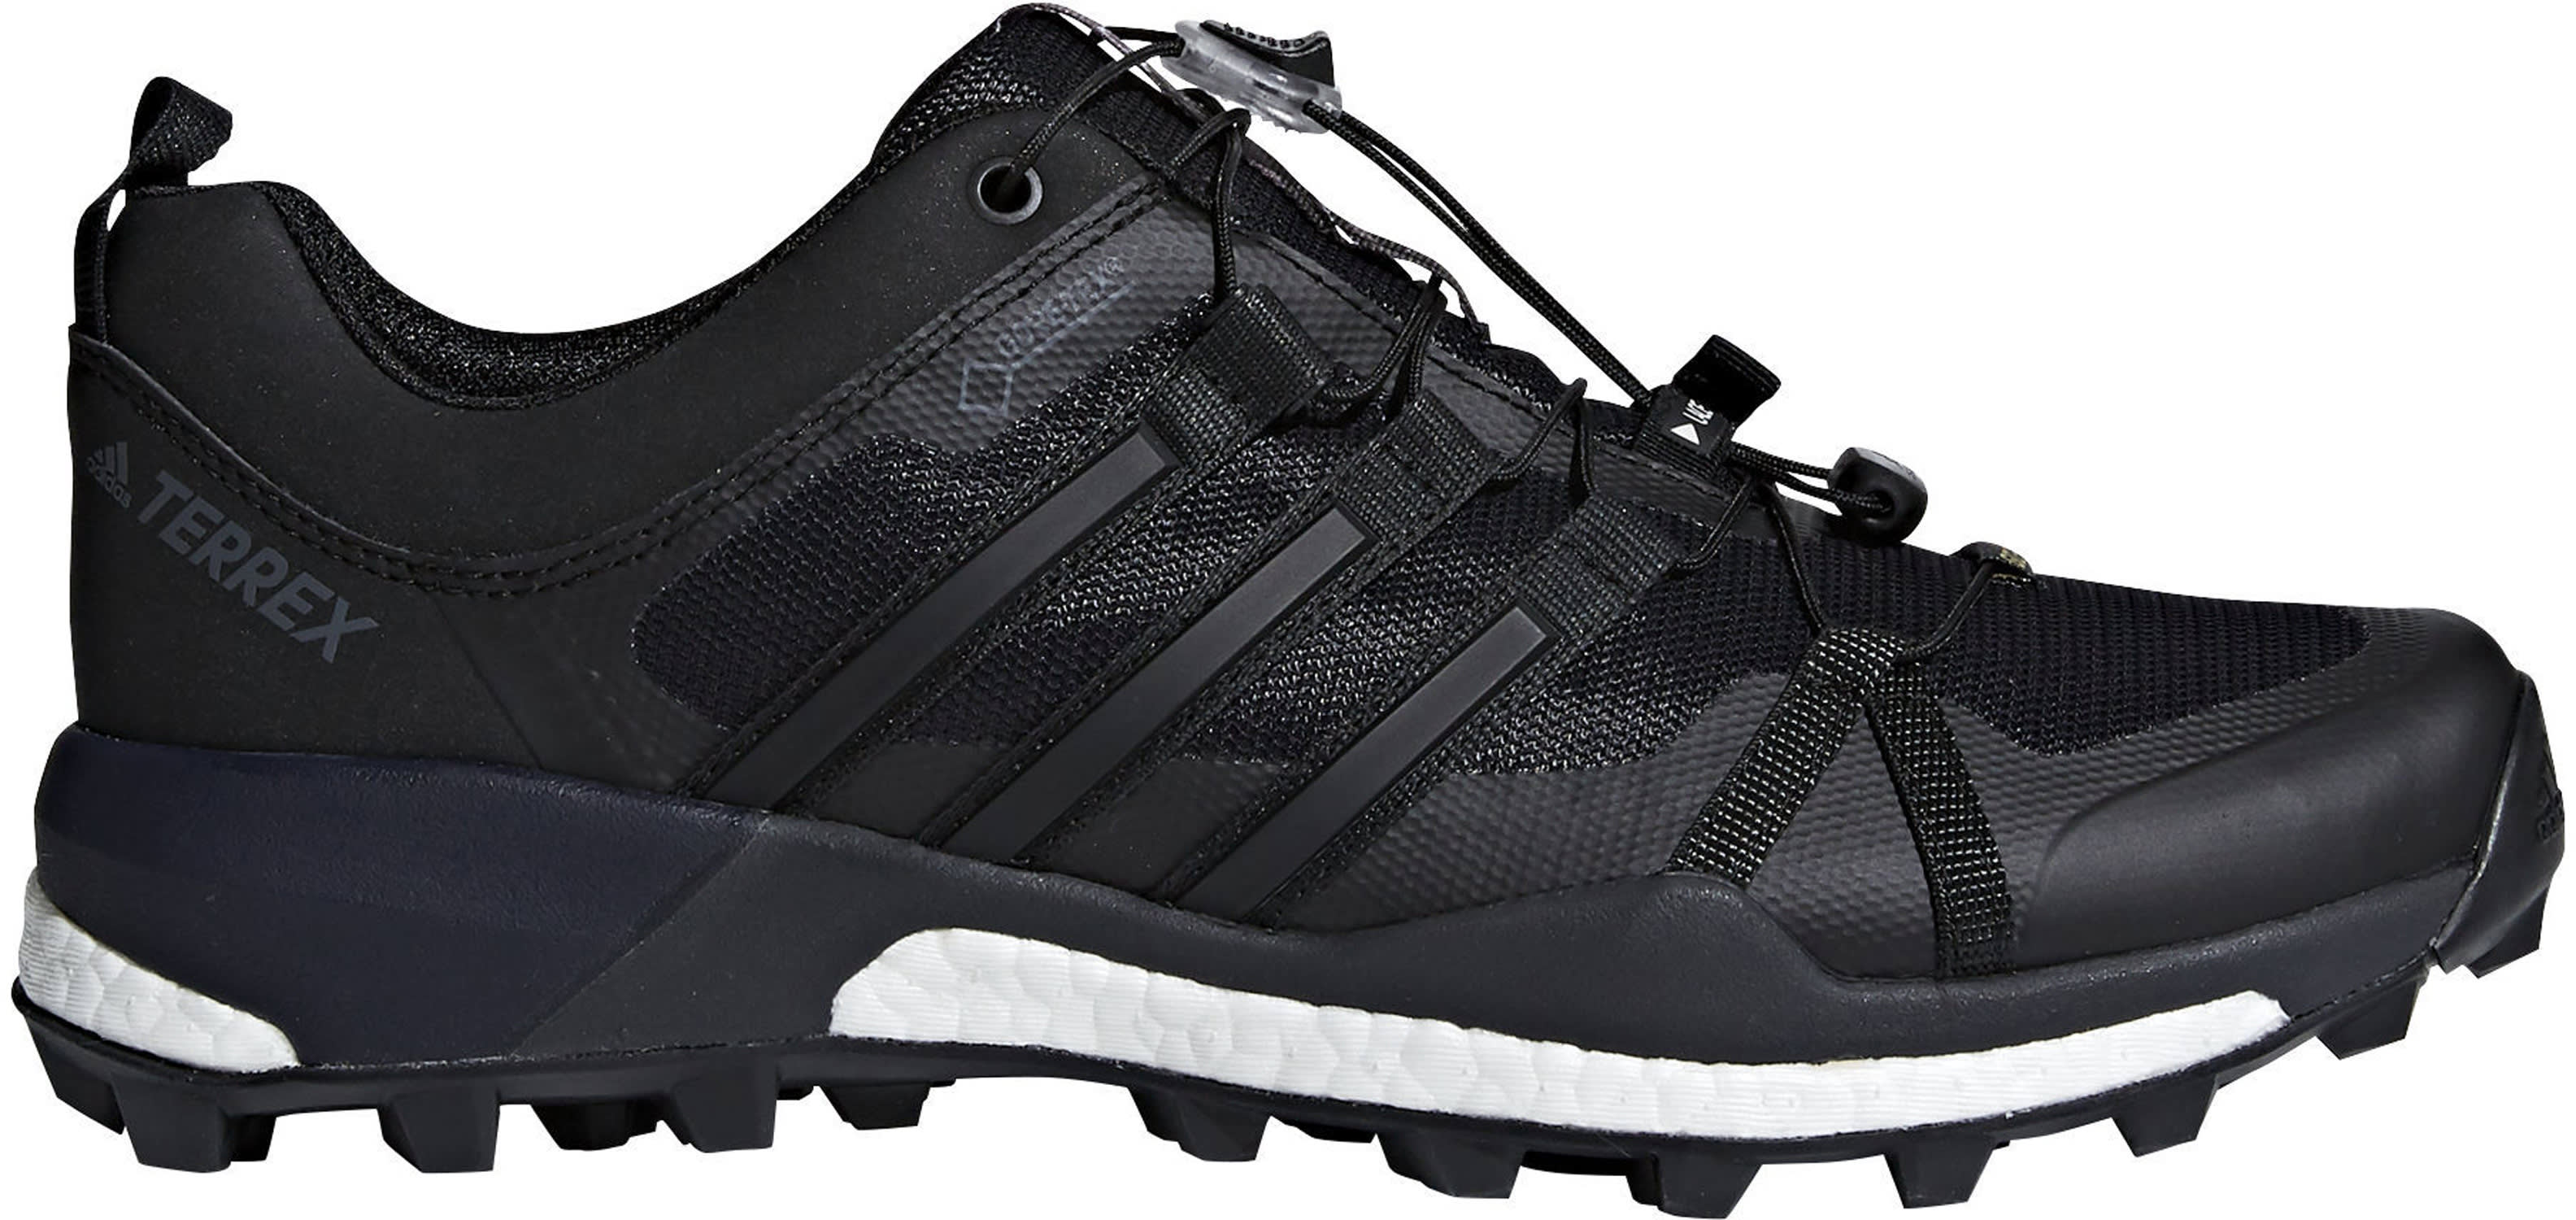 Adidas Terrex Skychaser GTX Hiking Shoes - thumbnail 1 2d95c882037